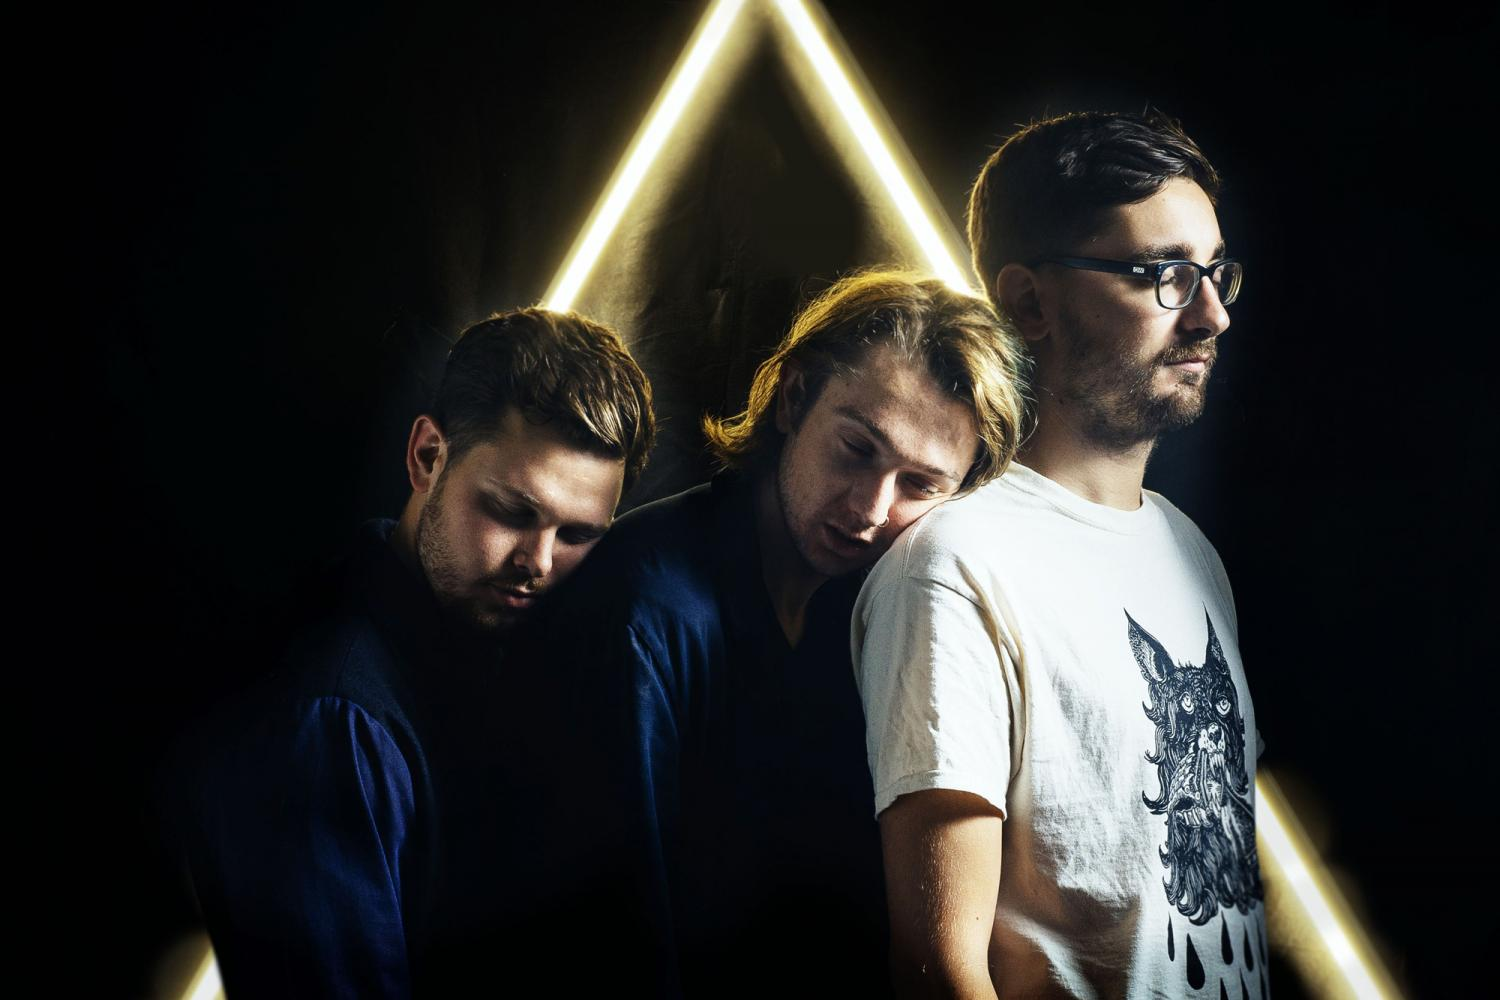 Hire Alt-J for Corporate Events